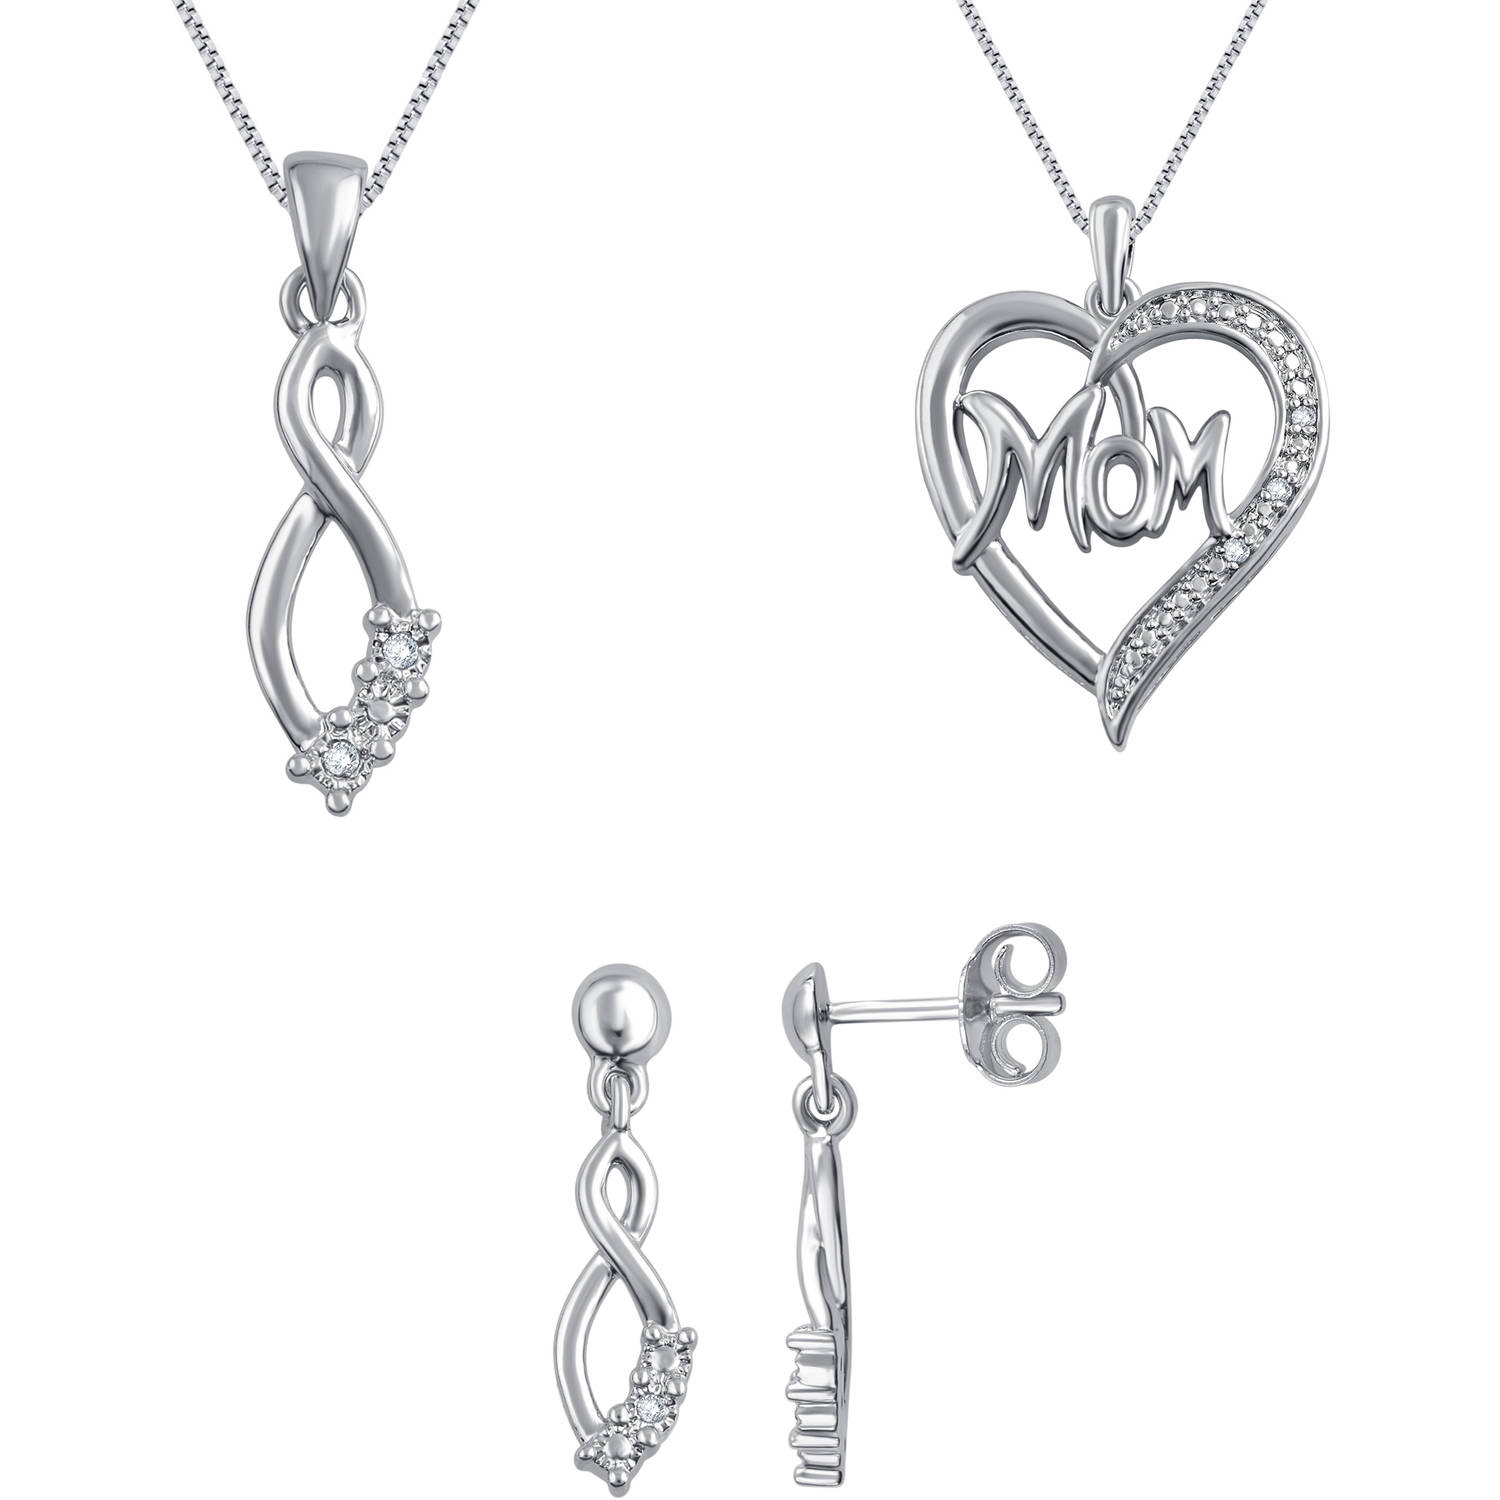 """18kt White Gold-Plated Brass Diamond Accent 3-Piece Fashion Jewelry Set with Heart """"MOM"""" Pendant, Infinity Earrings and Pendant"""